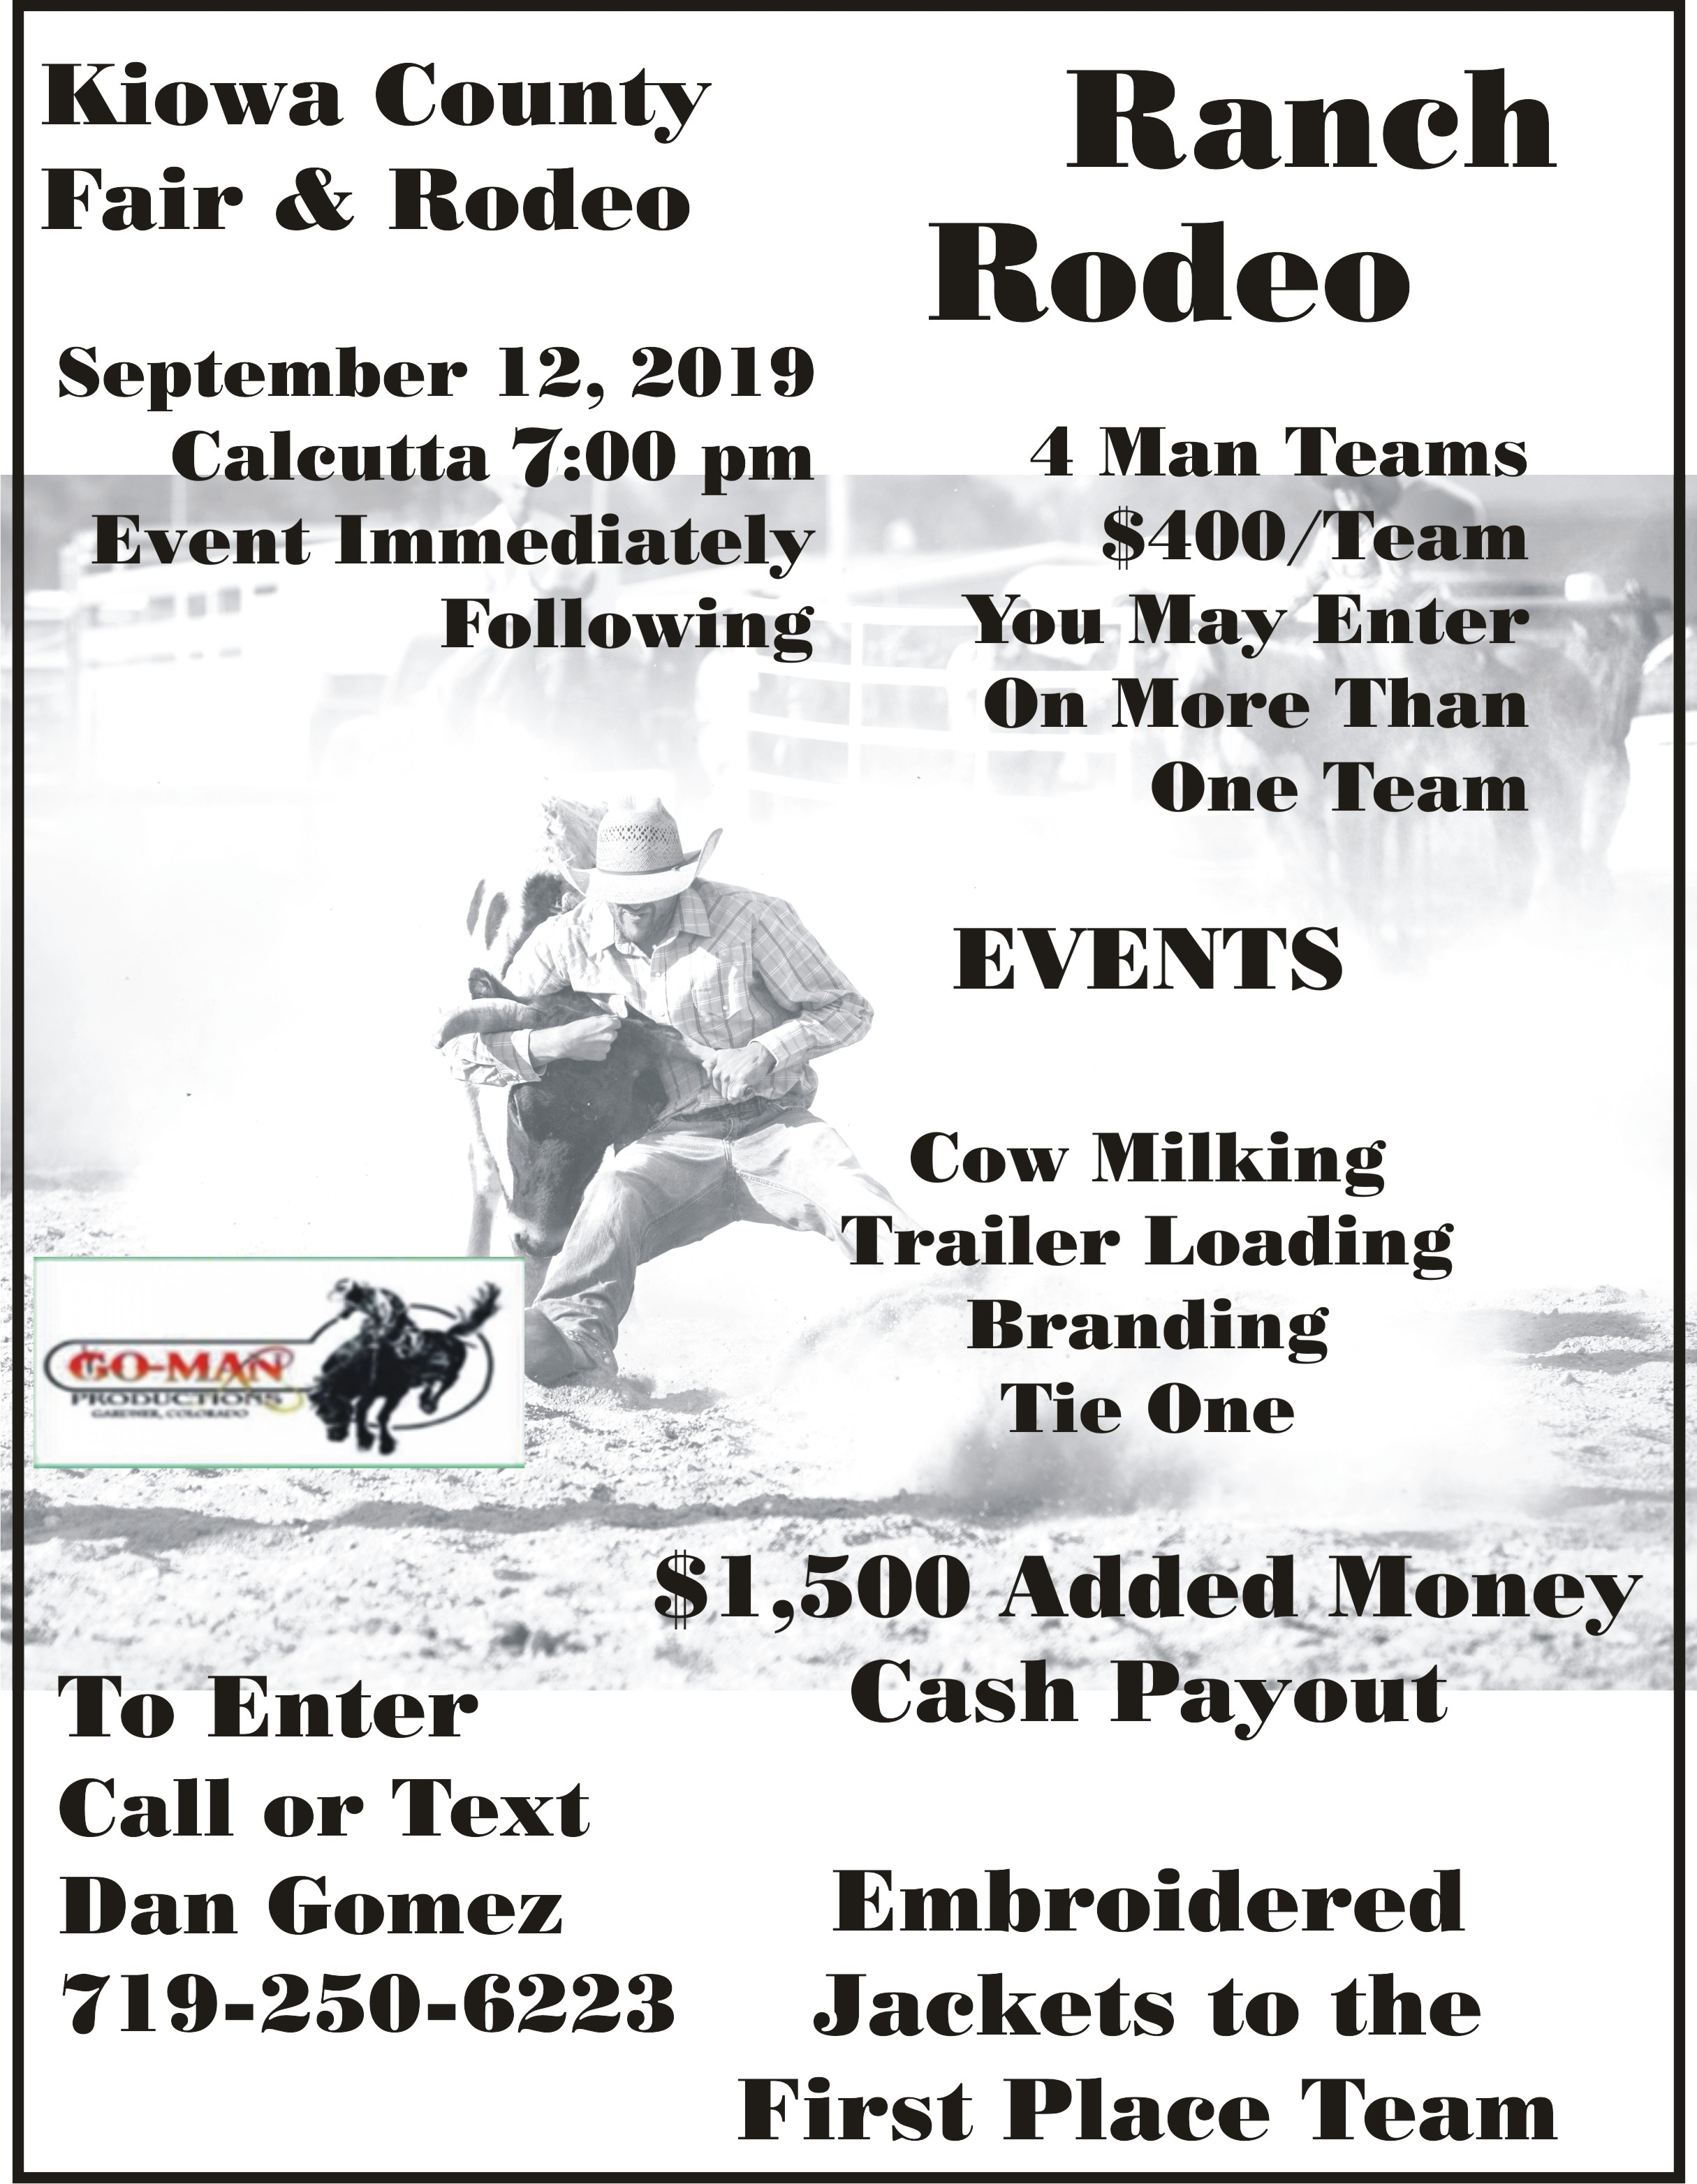 2019 Kiowa County Fair - Ranch Rodeo Poster